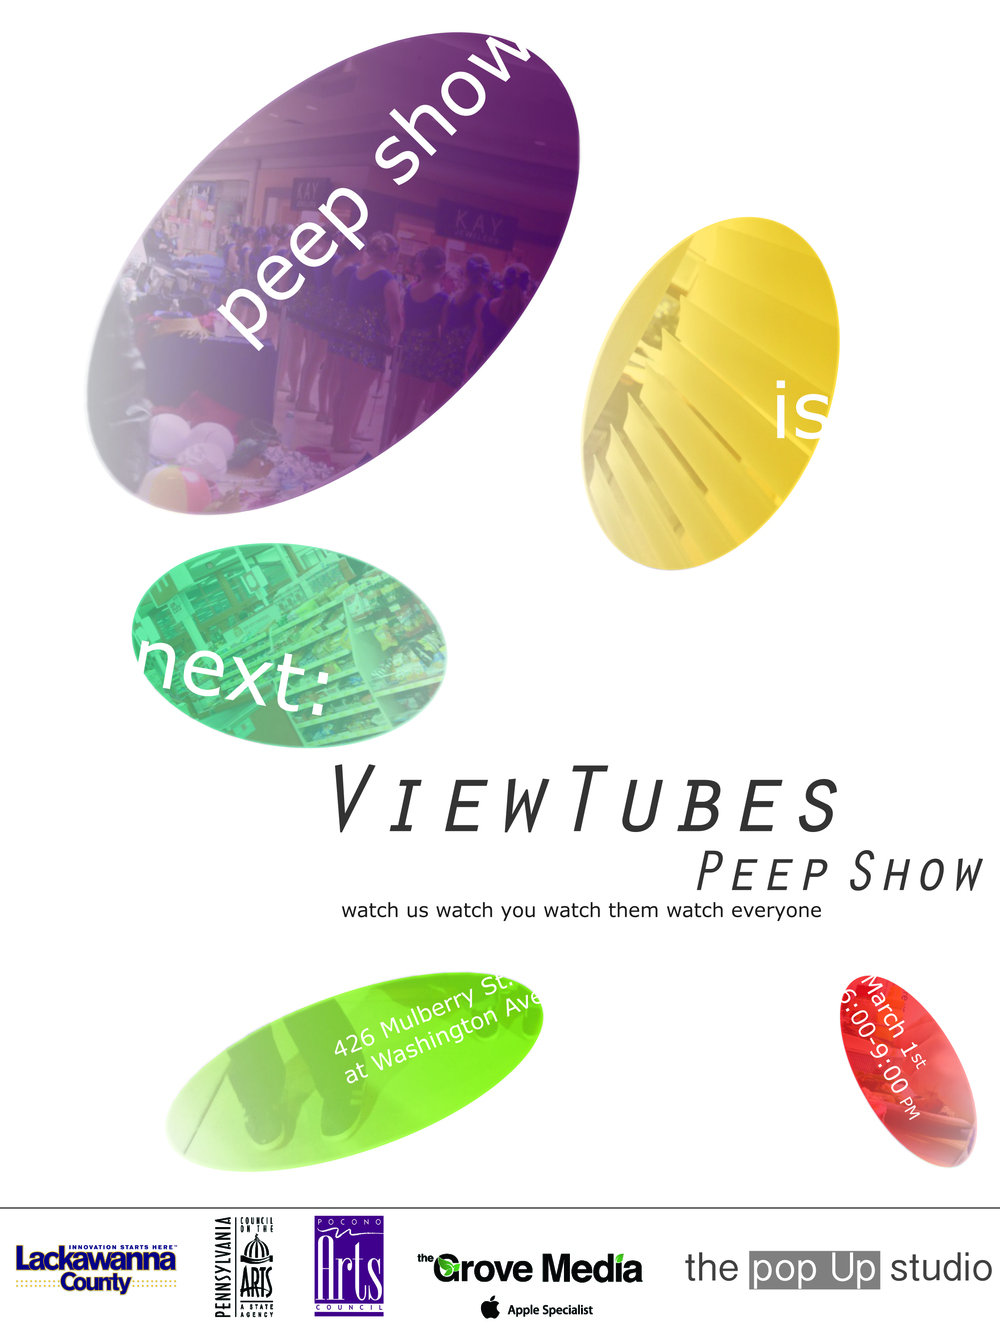 Peep Show is March 1st from 6-9 PM at 426 Mulberry St.